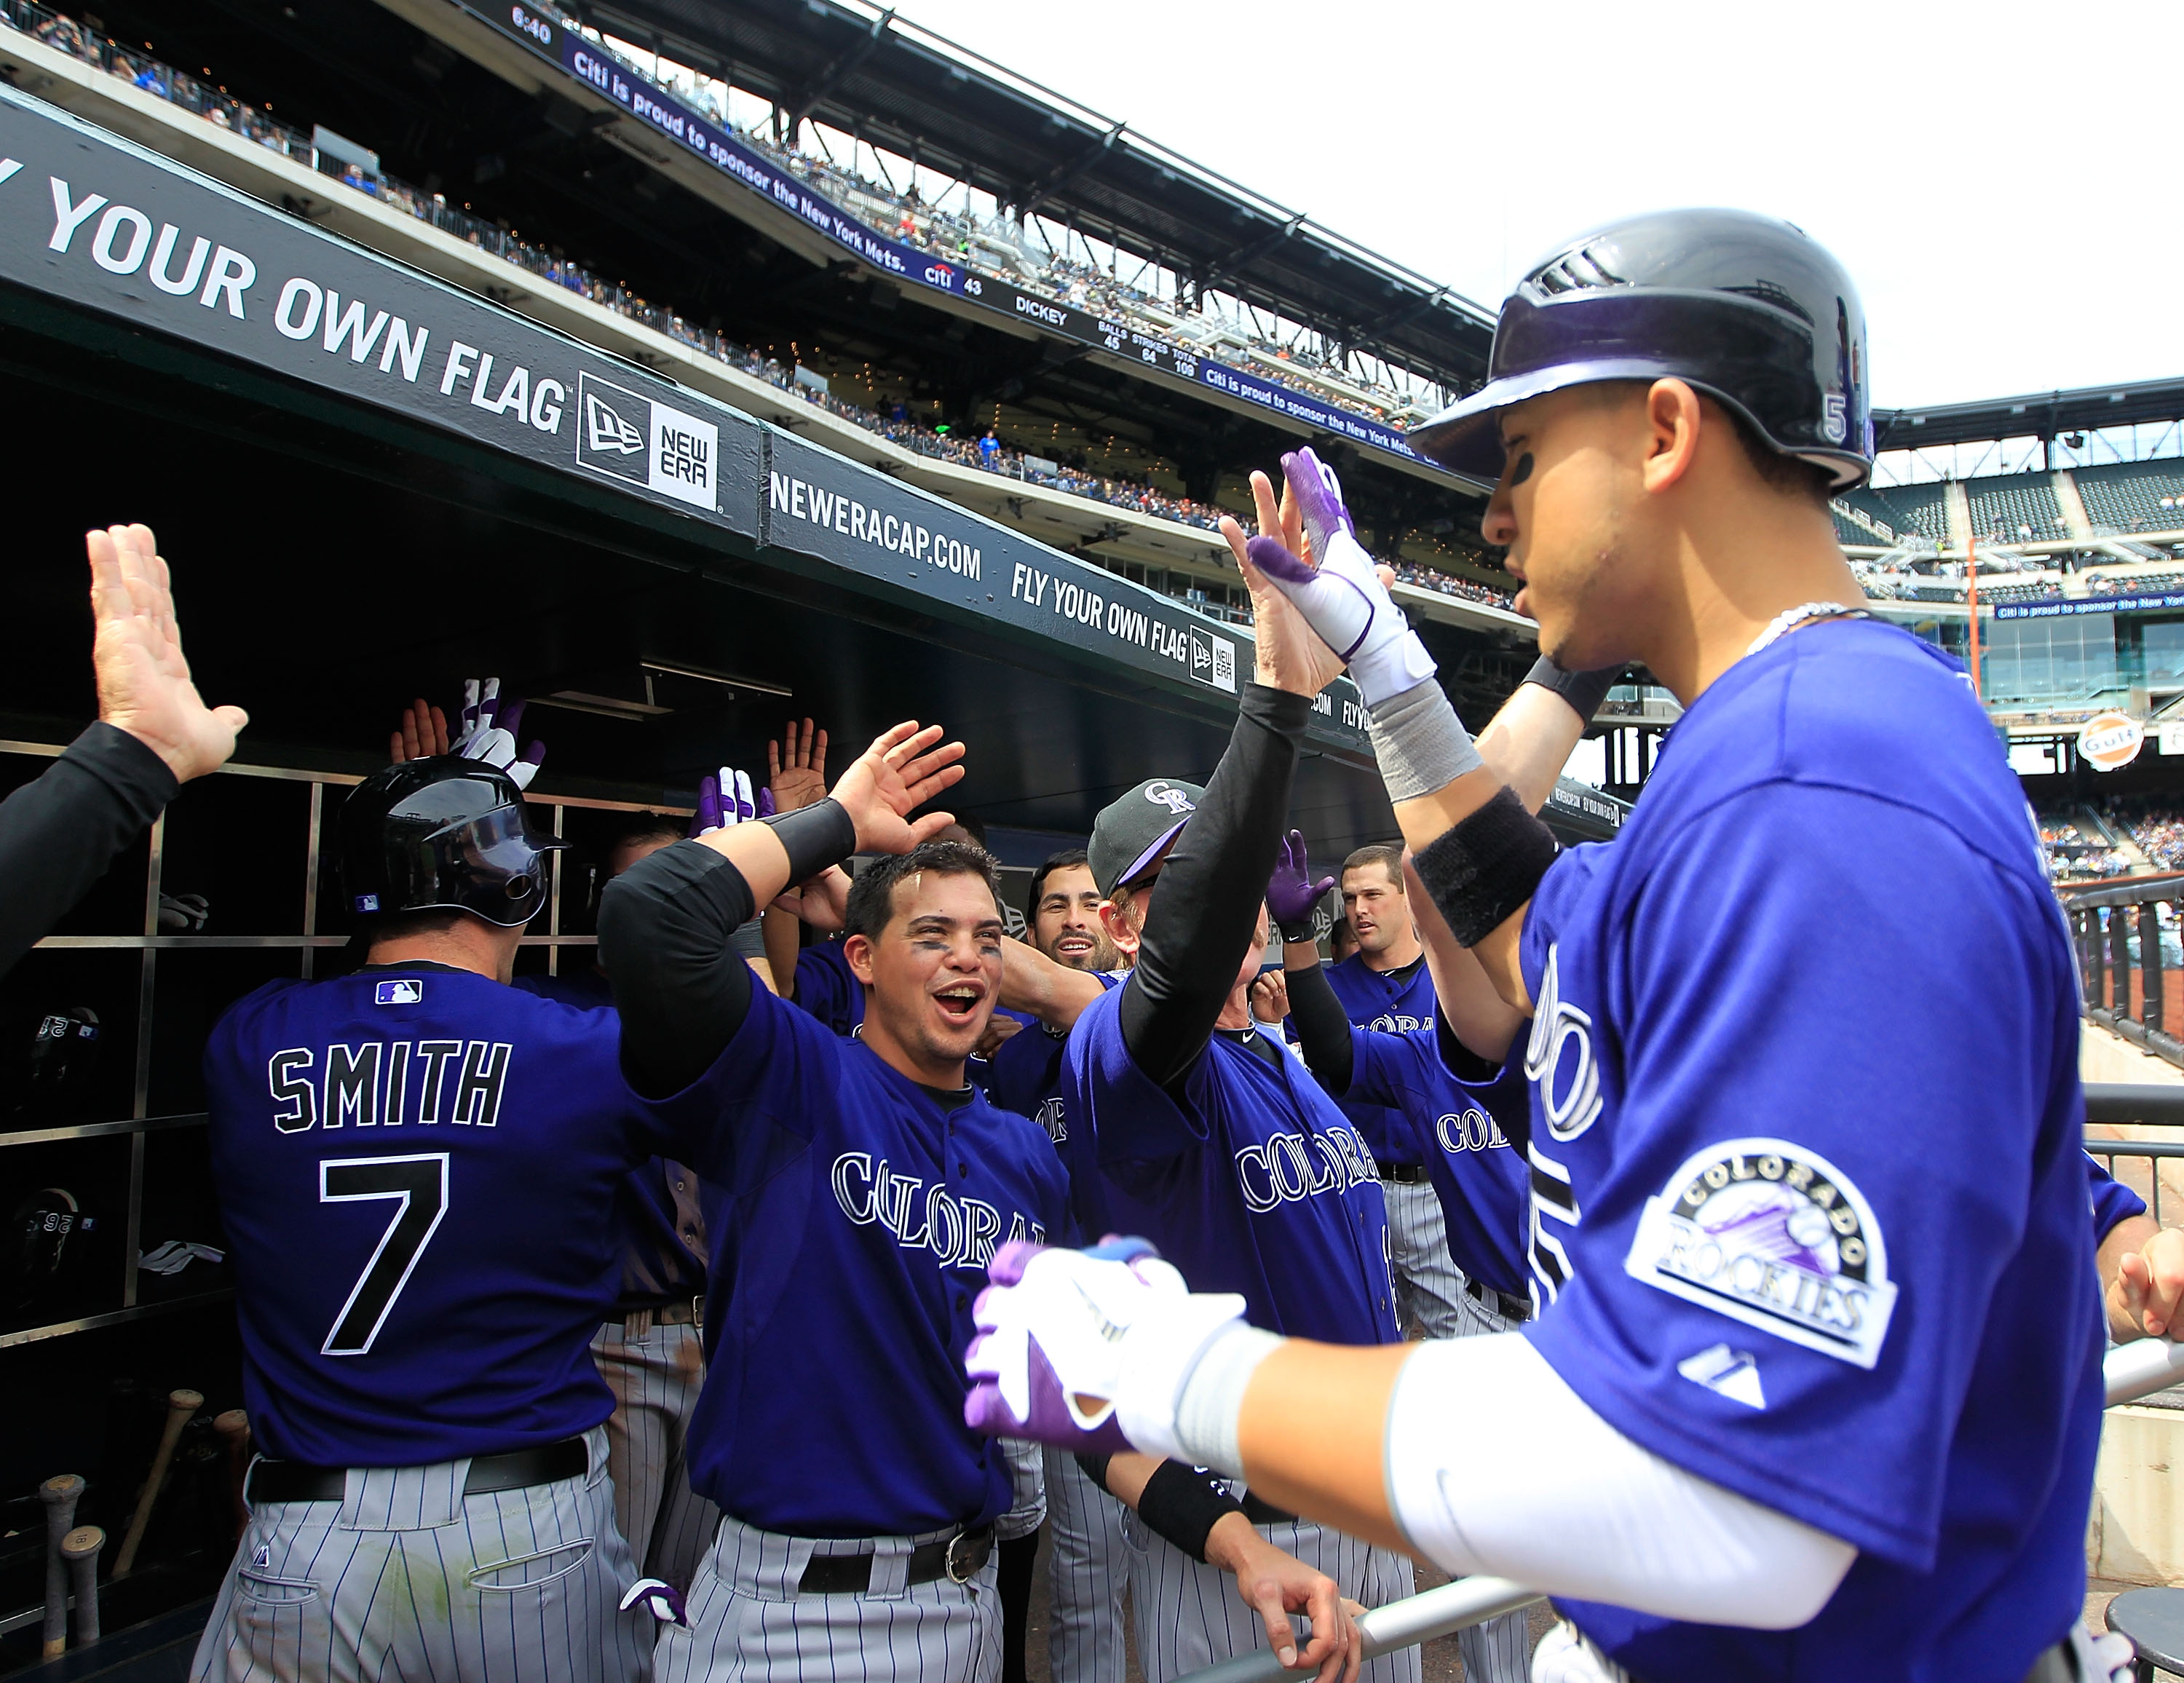 NEW YORK, NY - APRIL 14:  Carlos Gonzalez #5 of the Colorado Rockies is congratulated by his teammates on his seventh-inning home run against the New York Mets at Citi Field on April 14, 2011 in the Flushing neighborhood of the Queens borough of New York